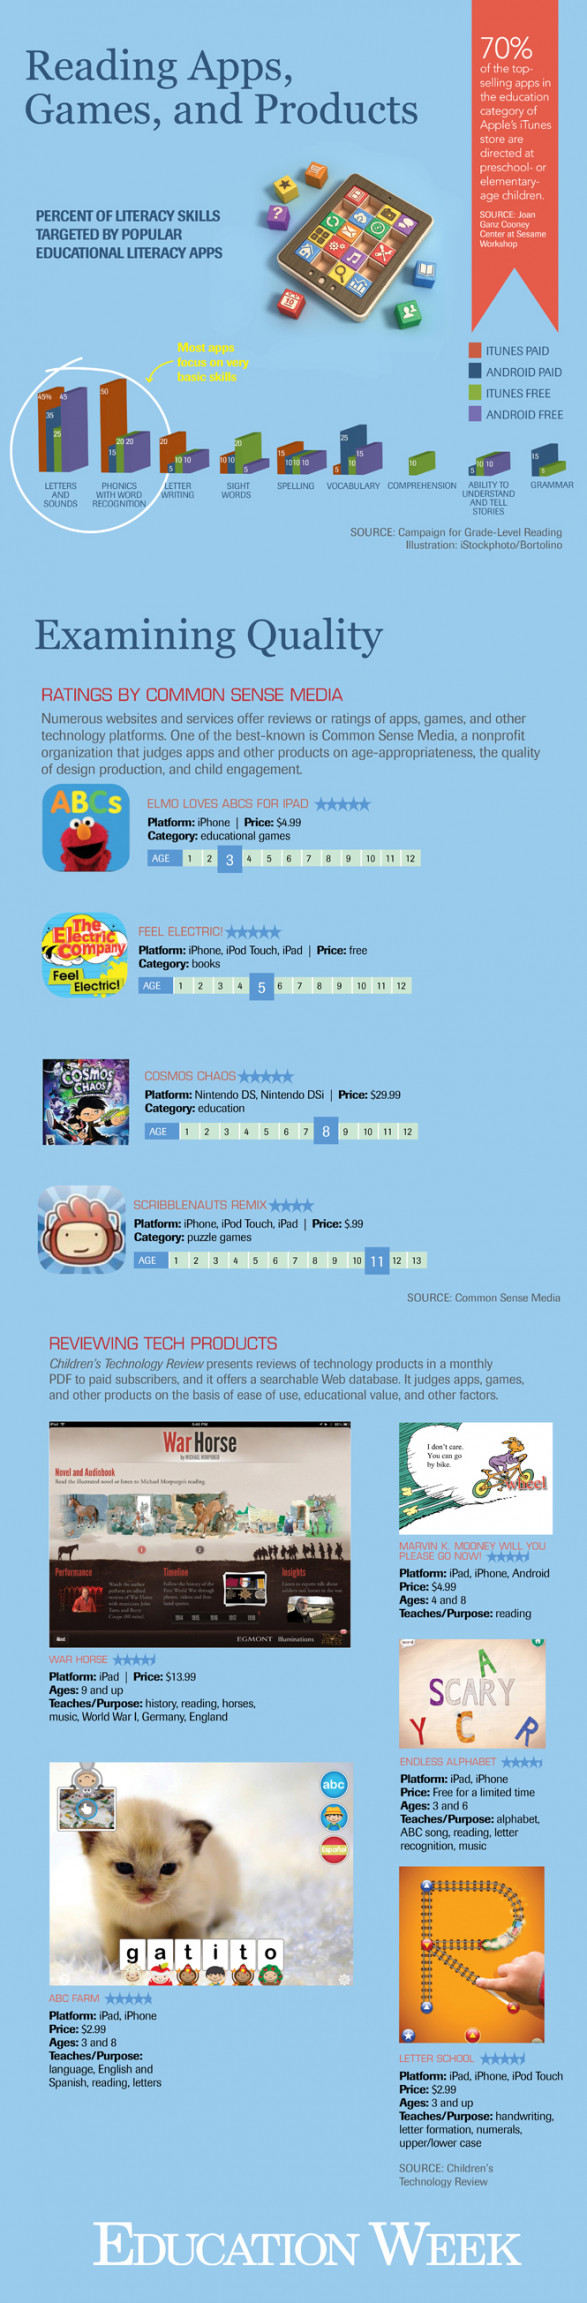 A Primer on Mobile Apps for Young Students Learning to Read